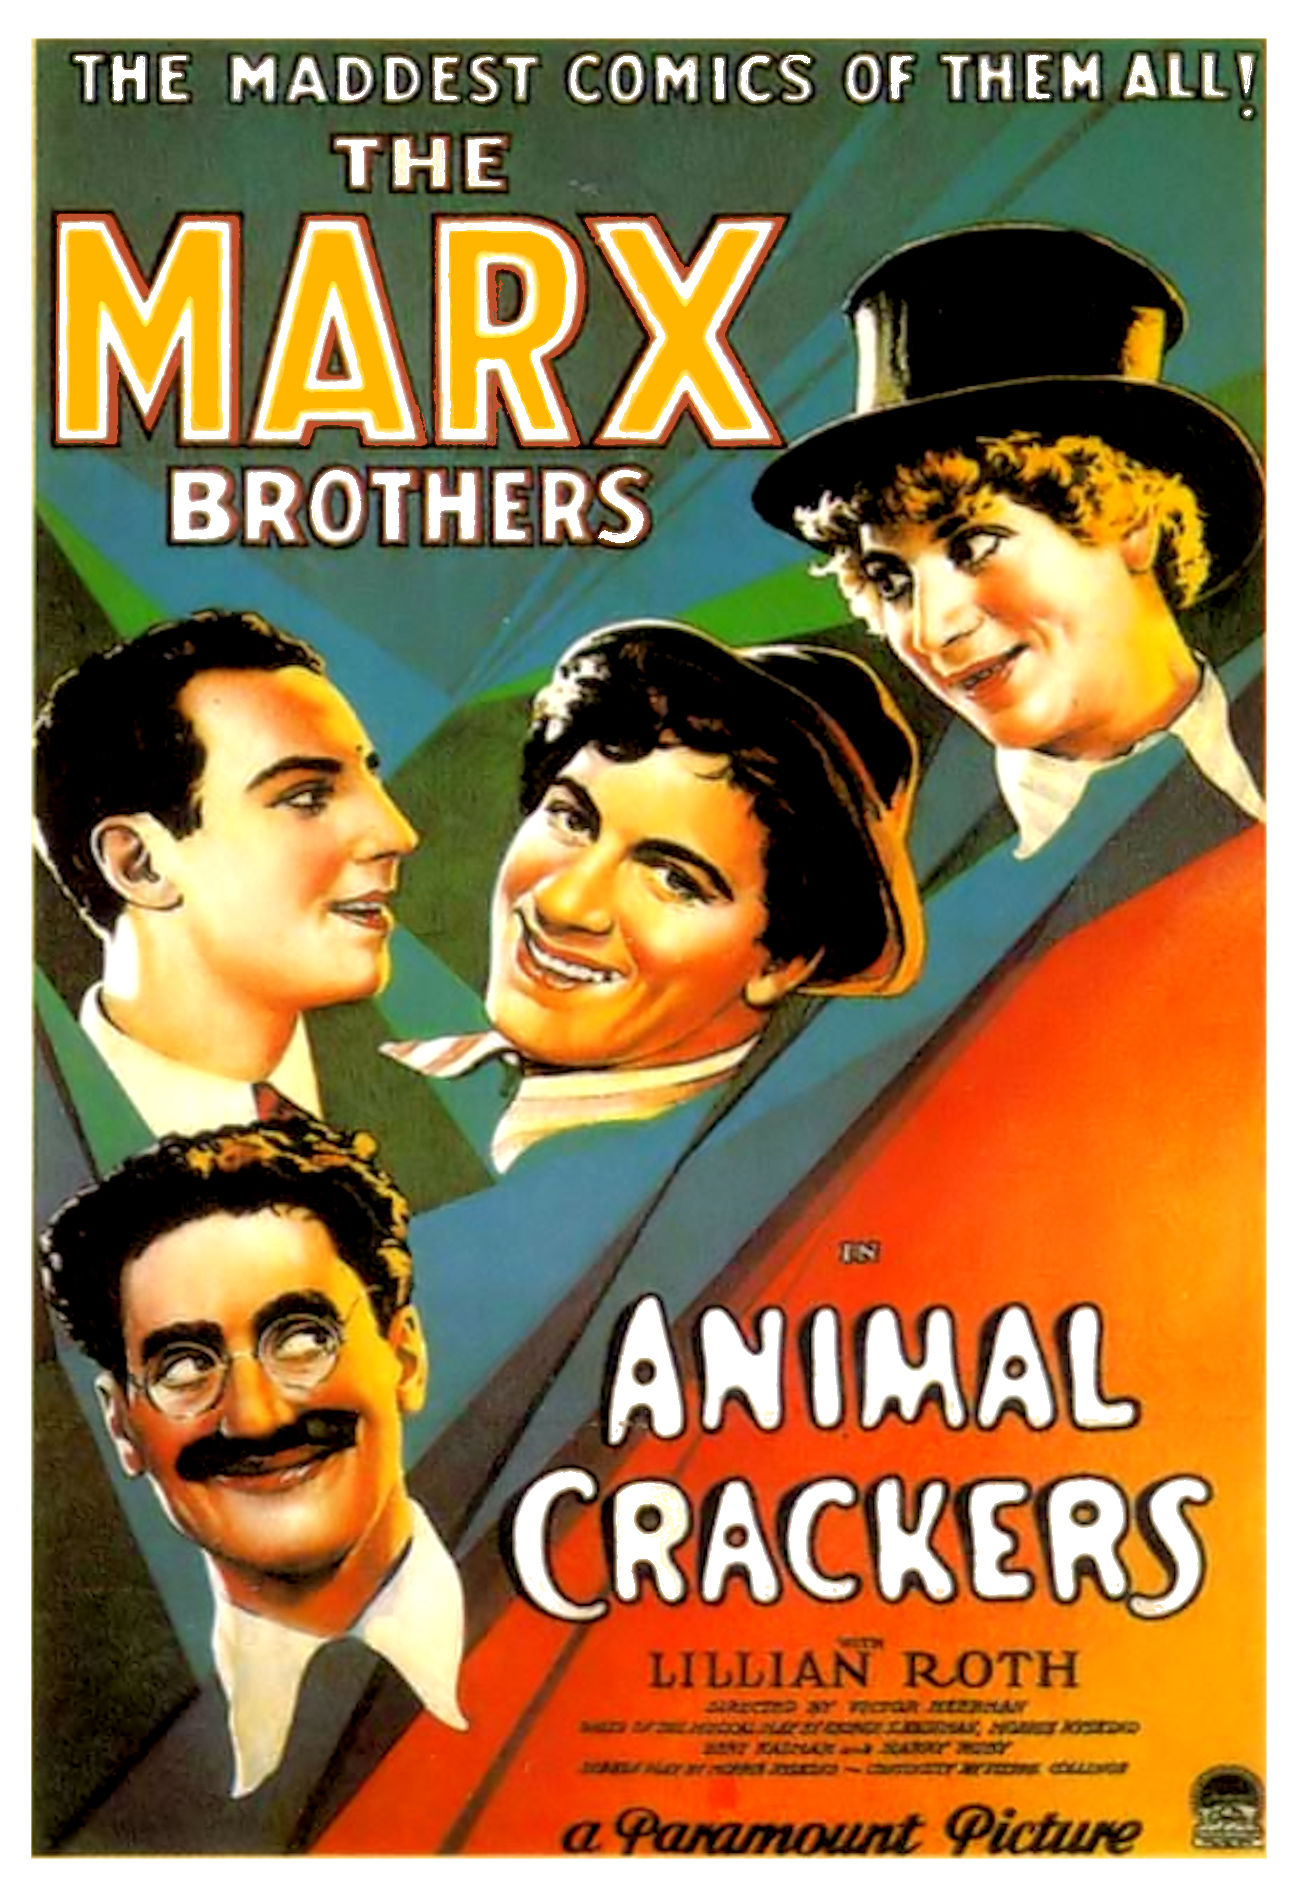 Image result for animal crackers marx poster